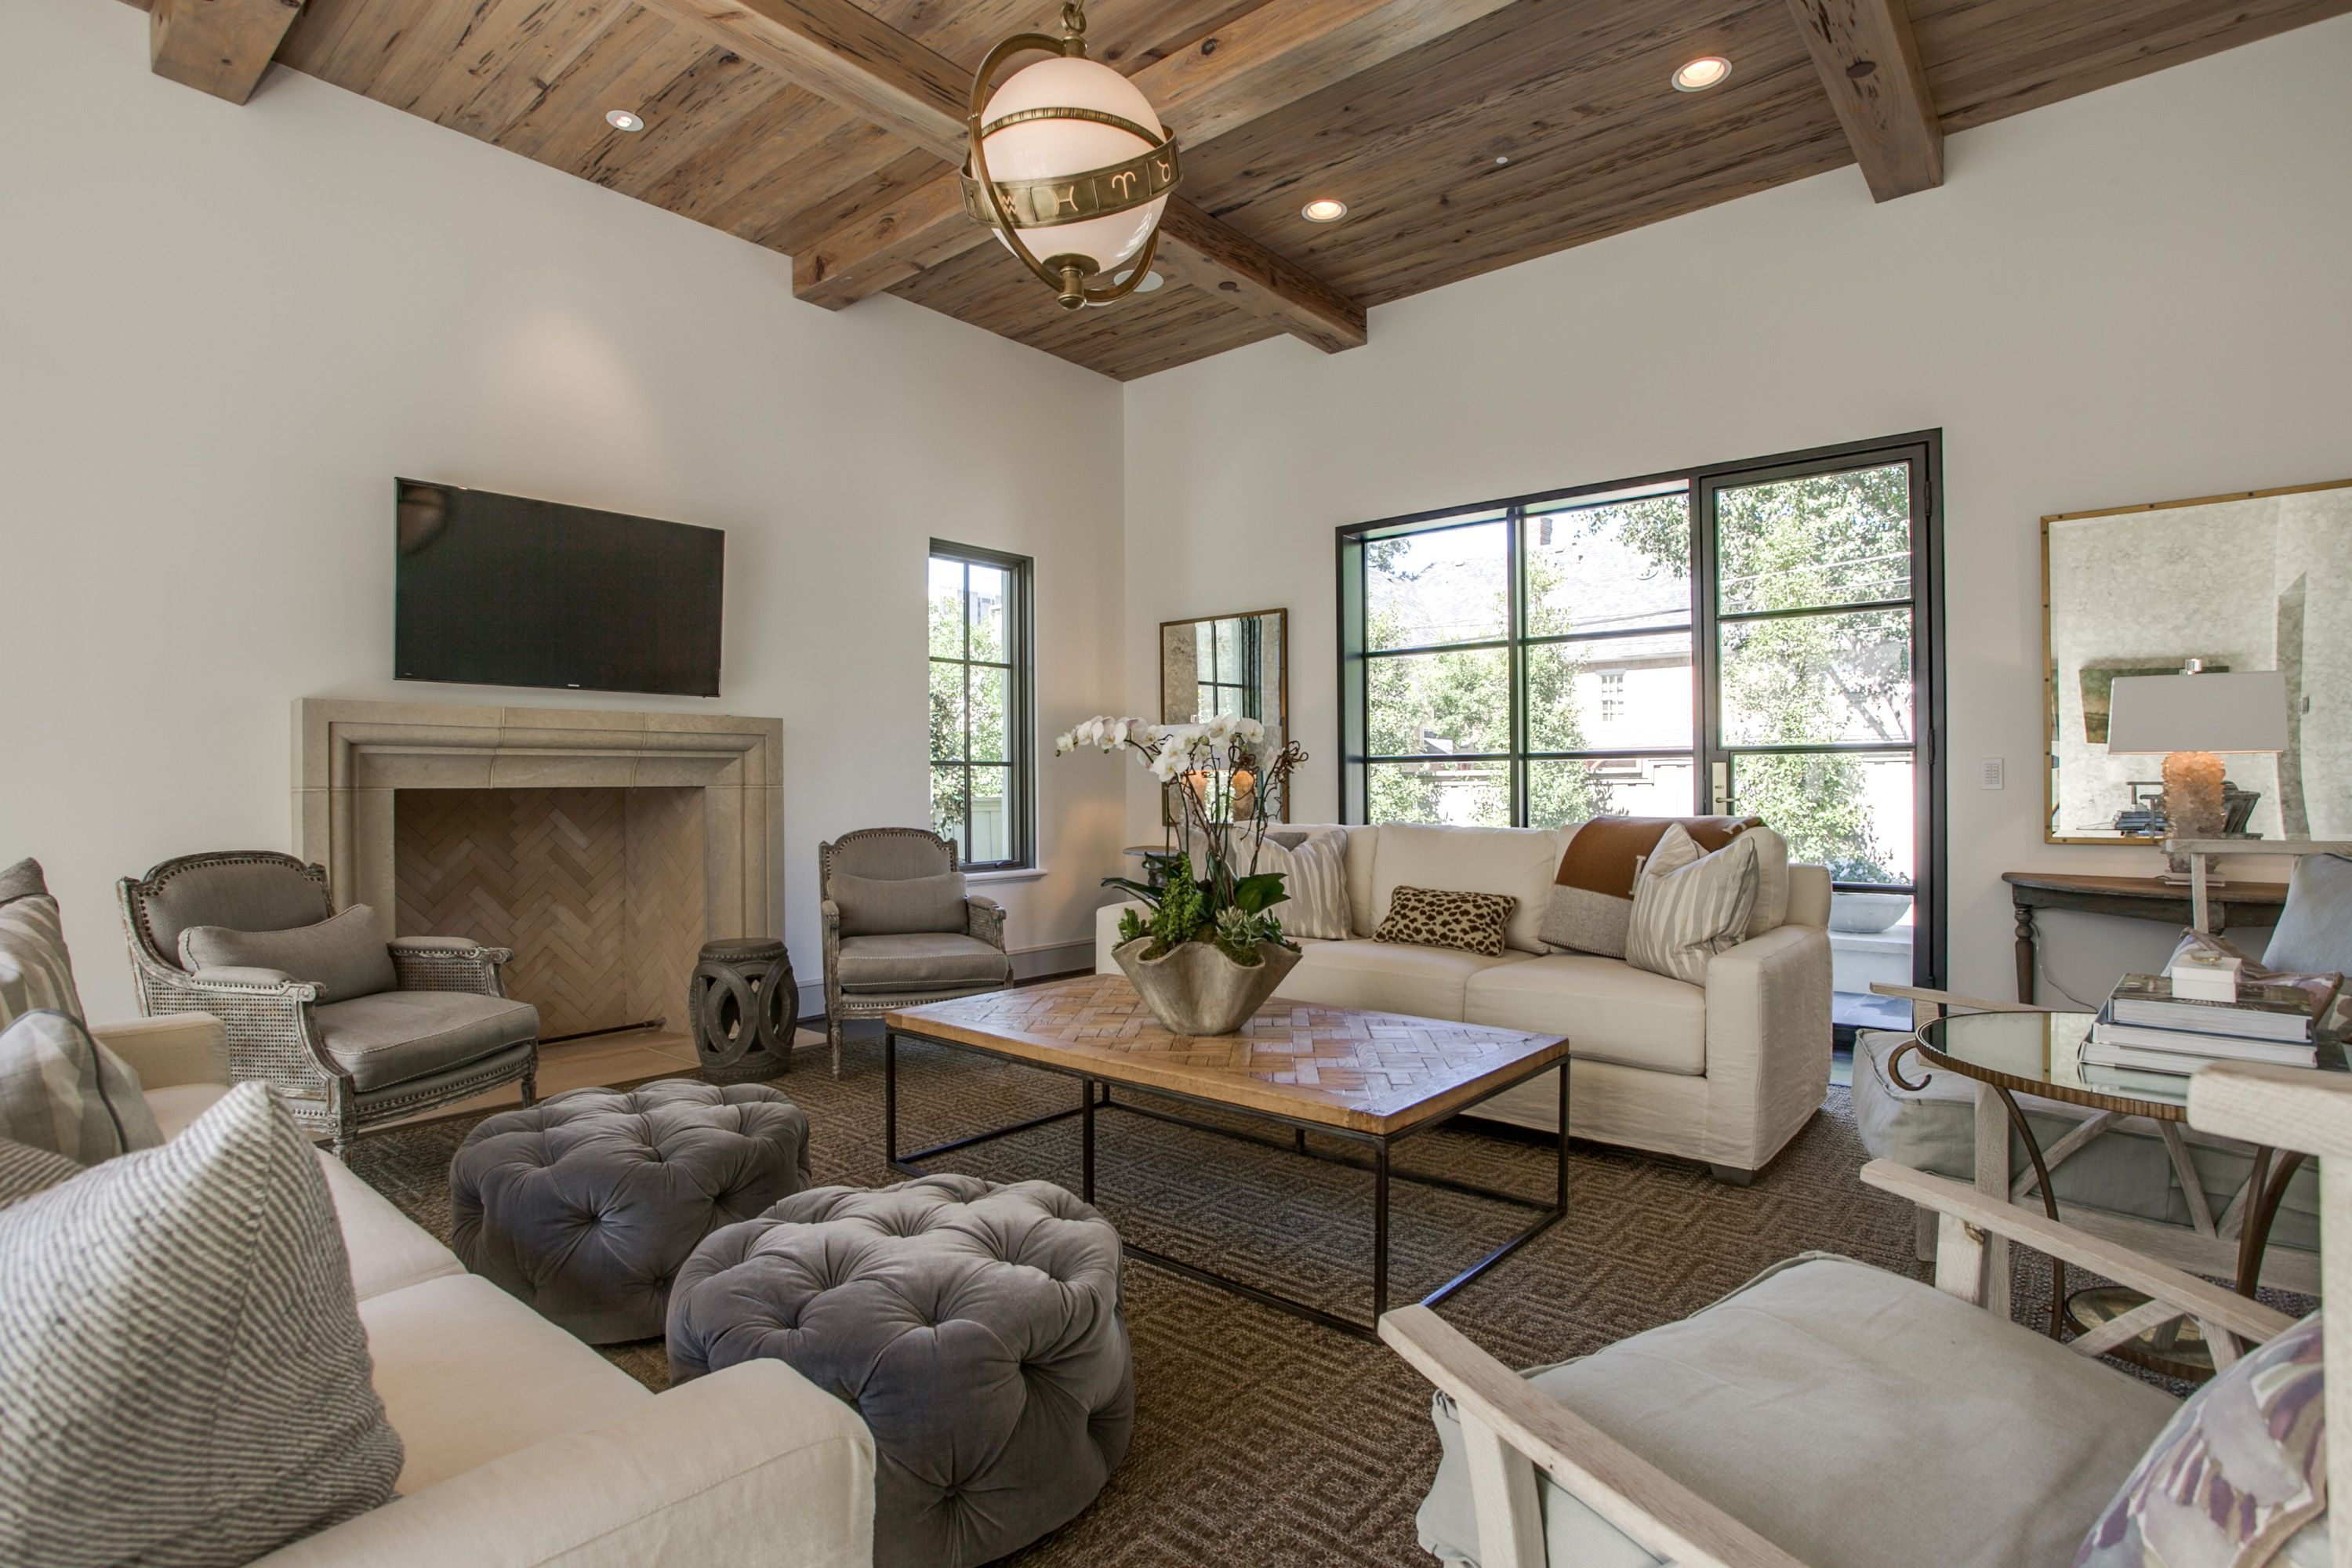 7 great neutral paint colors for your walls on best neutral paint colors for living room sherwin williams living room id=87588